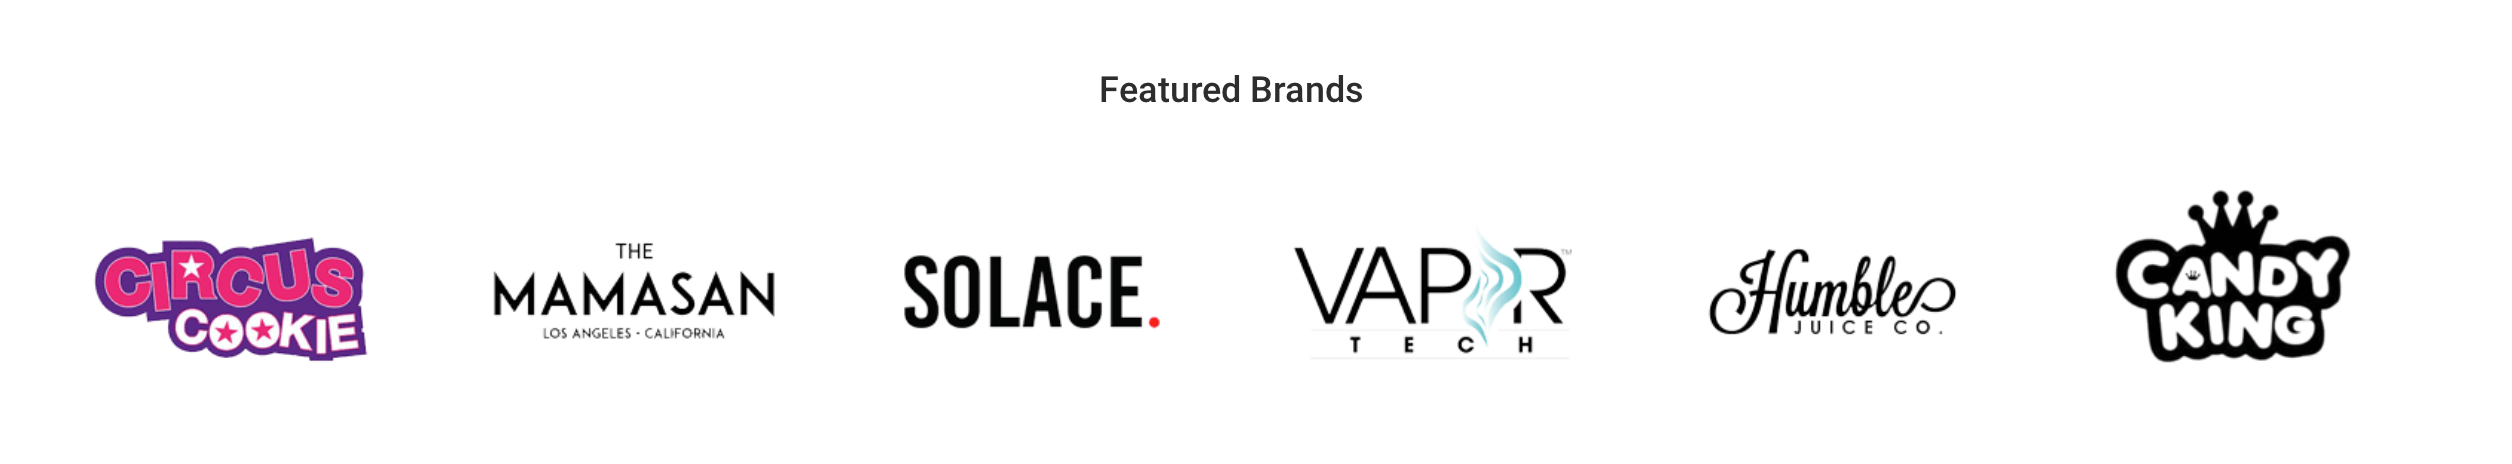 VR - Featured Brand Logos